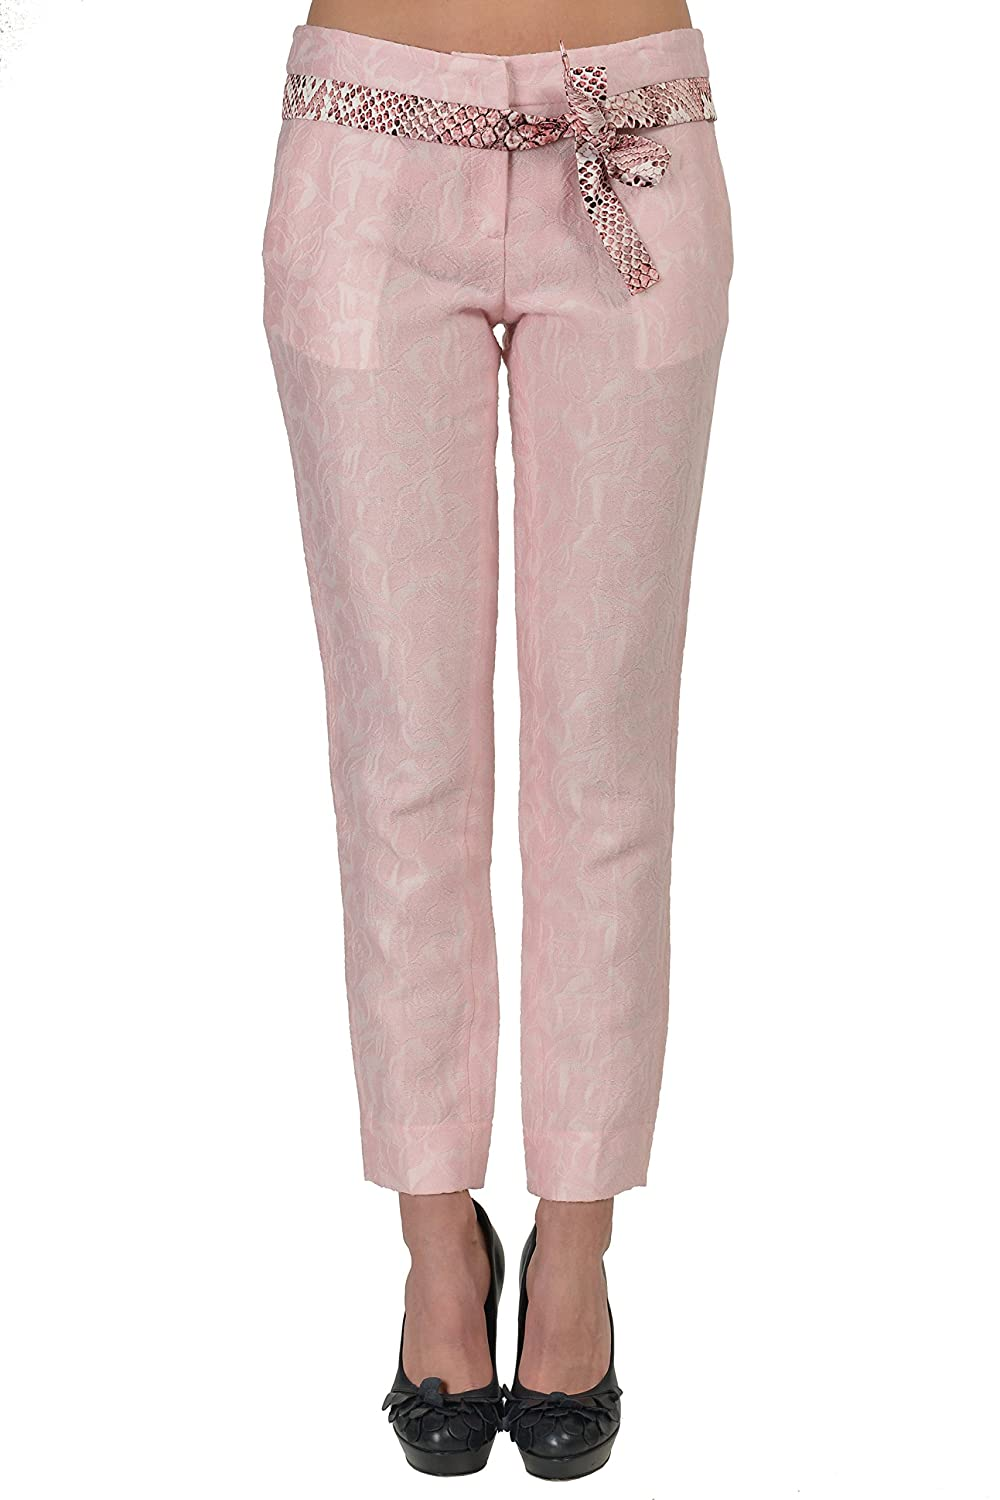 Just Cavalli Wool Light Pink Belted Women's Casual Pants US 4 IT 40